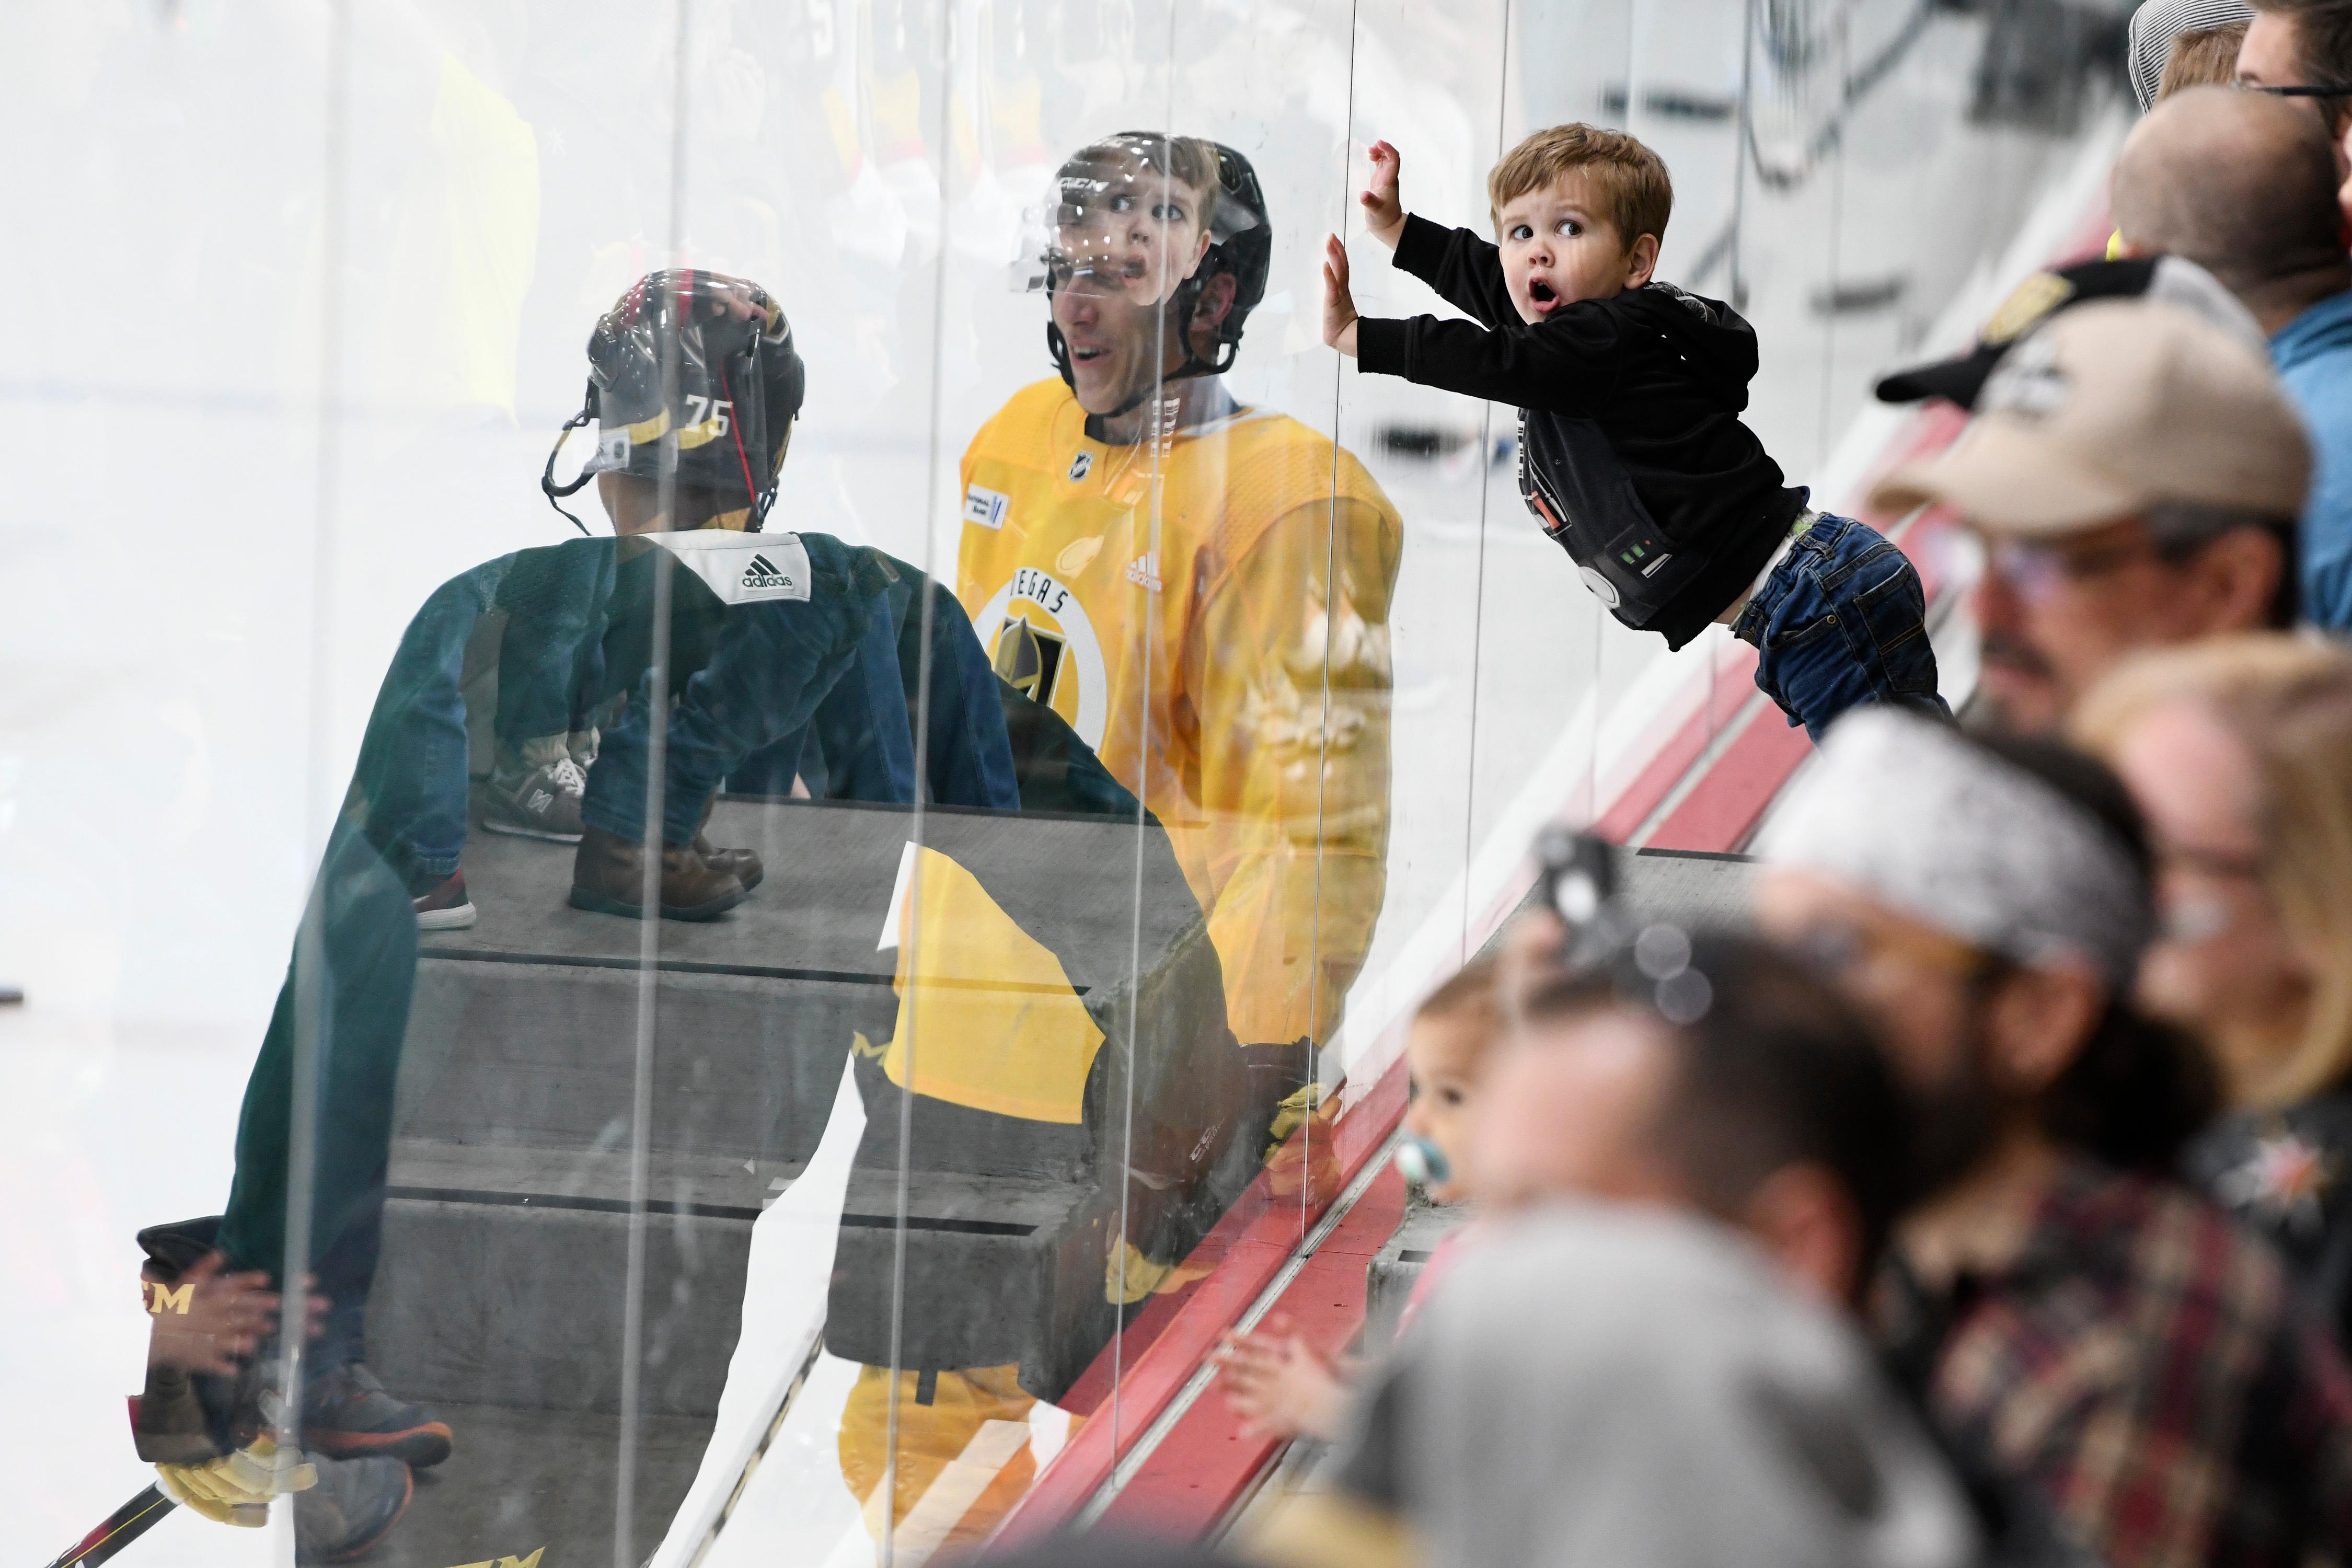 A young boy leans on the glass during the Vegas Golden Knights practice Friday, April 20, 2018, at City National Arena in Las Vegas. CREDIT: Sam Morris/Las Vegas News Bureau